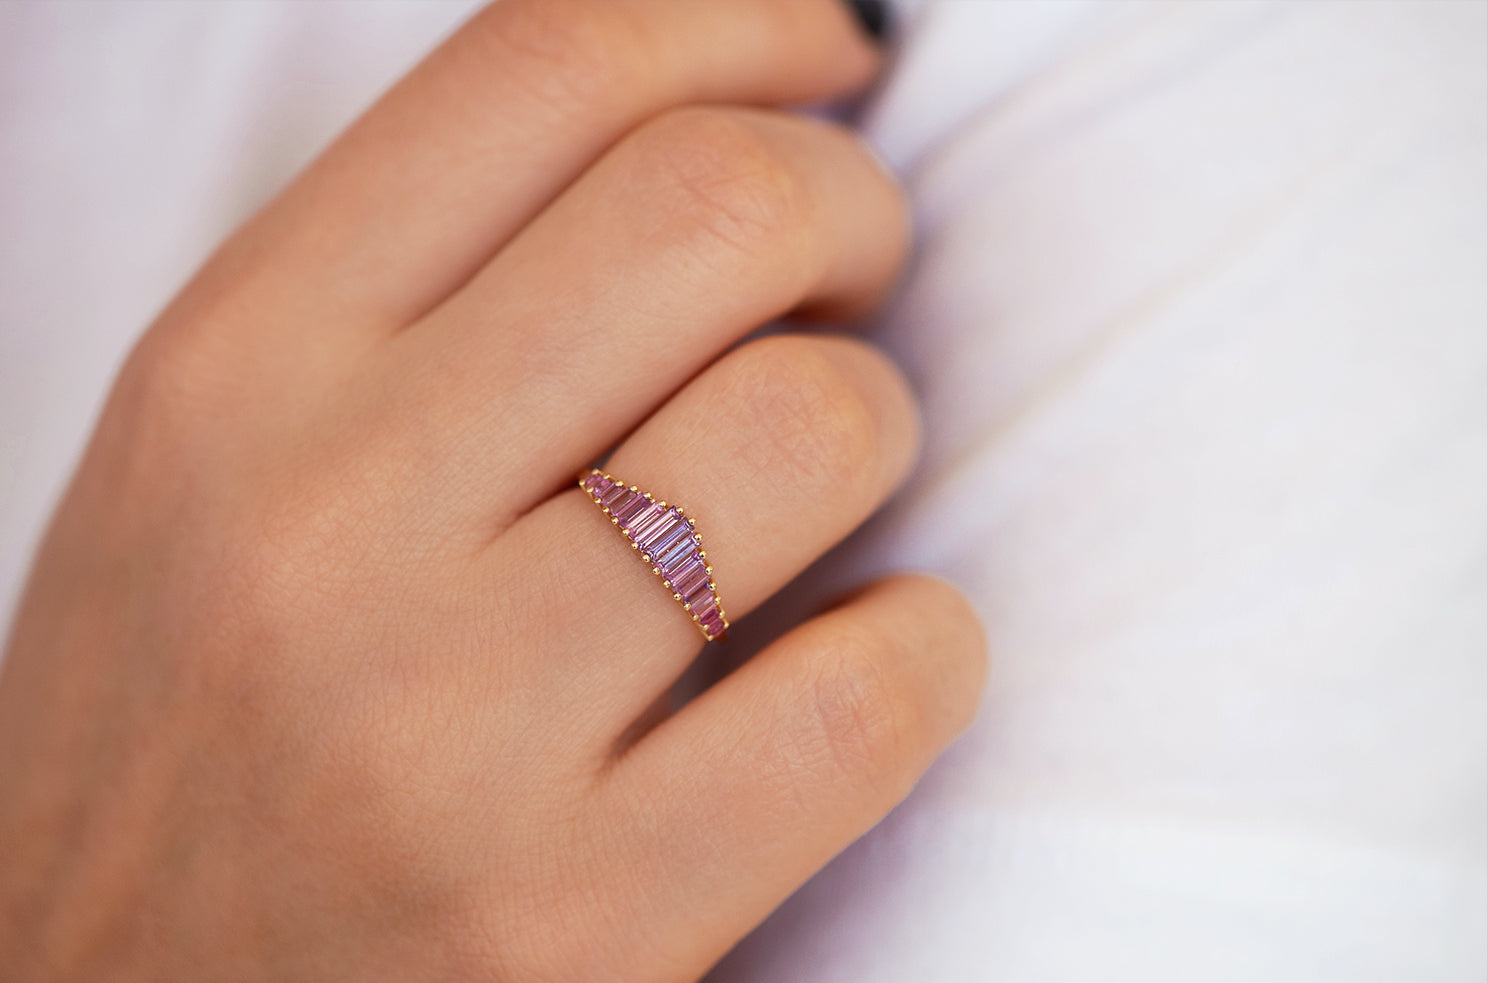 Baguette Cut Sapphire Ring - Purple and Lilac Engagement Ring on Hand